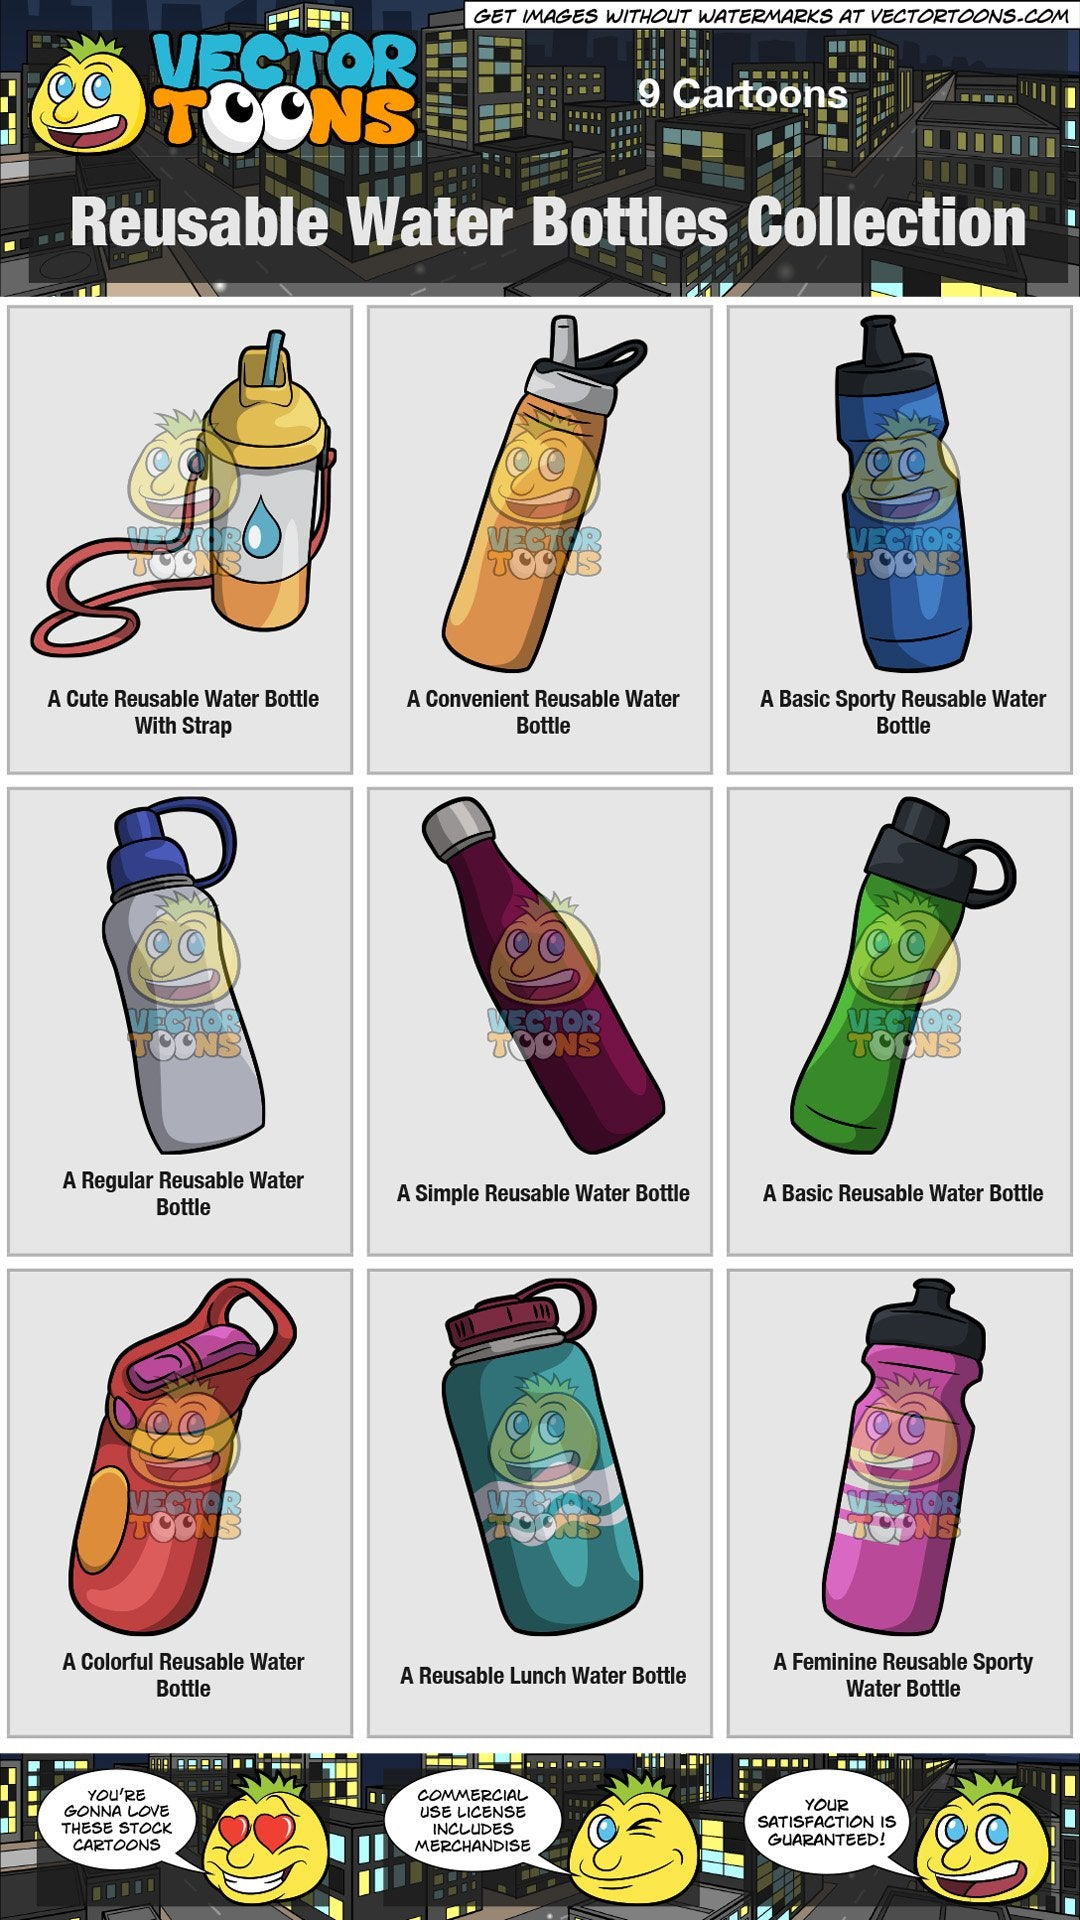 Reusable Water Bottles Collection